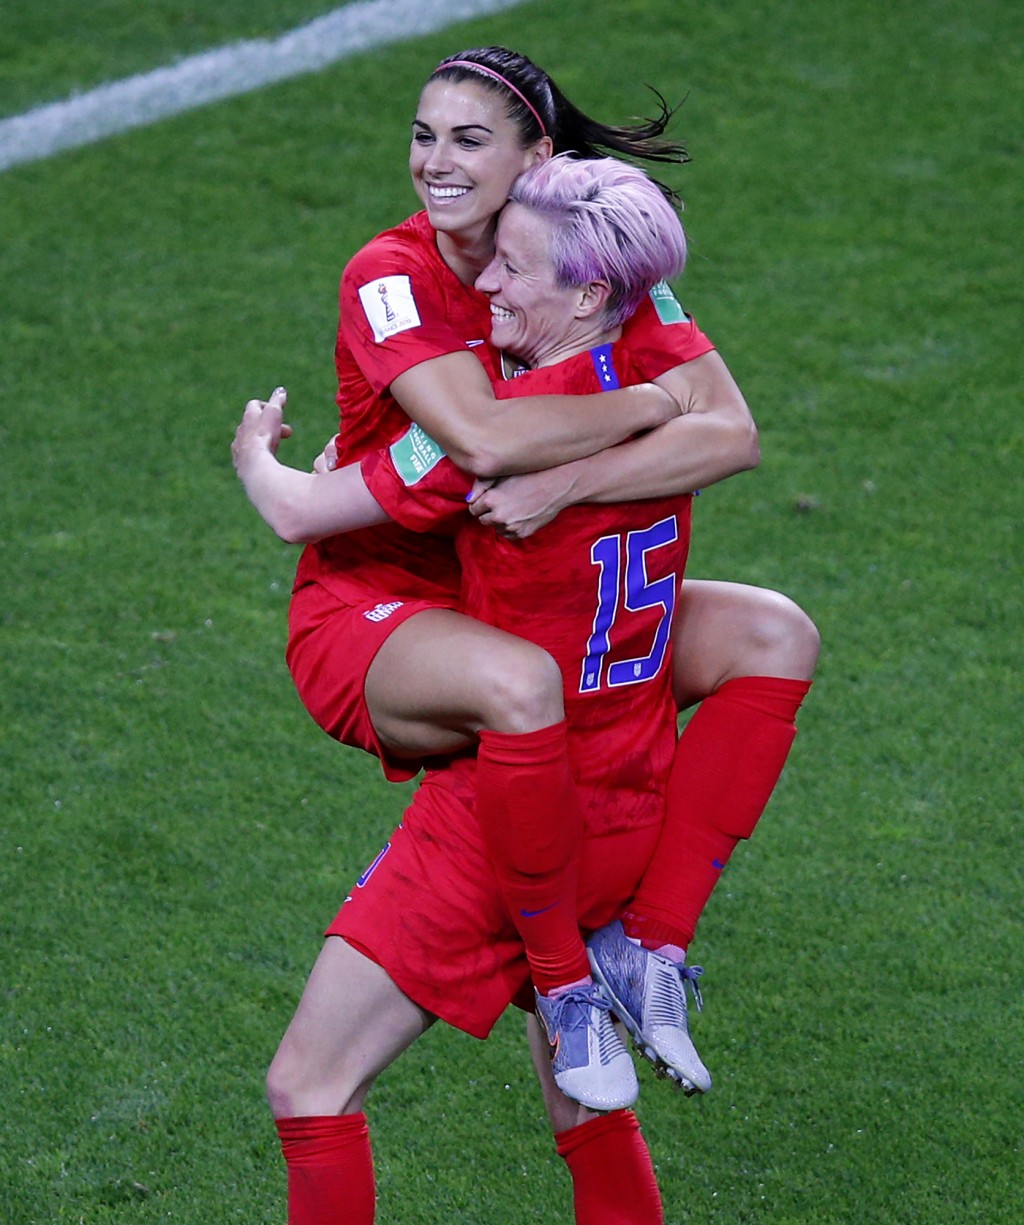 United States' Megan Rapinoe, right, congratulates teammate Alex Morgan after scoring her fifth goal during the Women's World Cup Group F soccer match